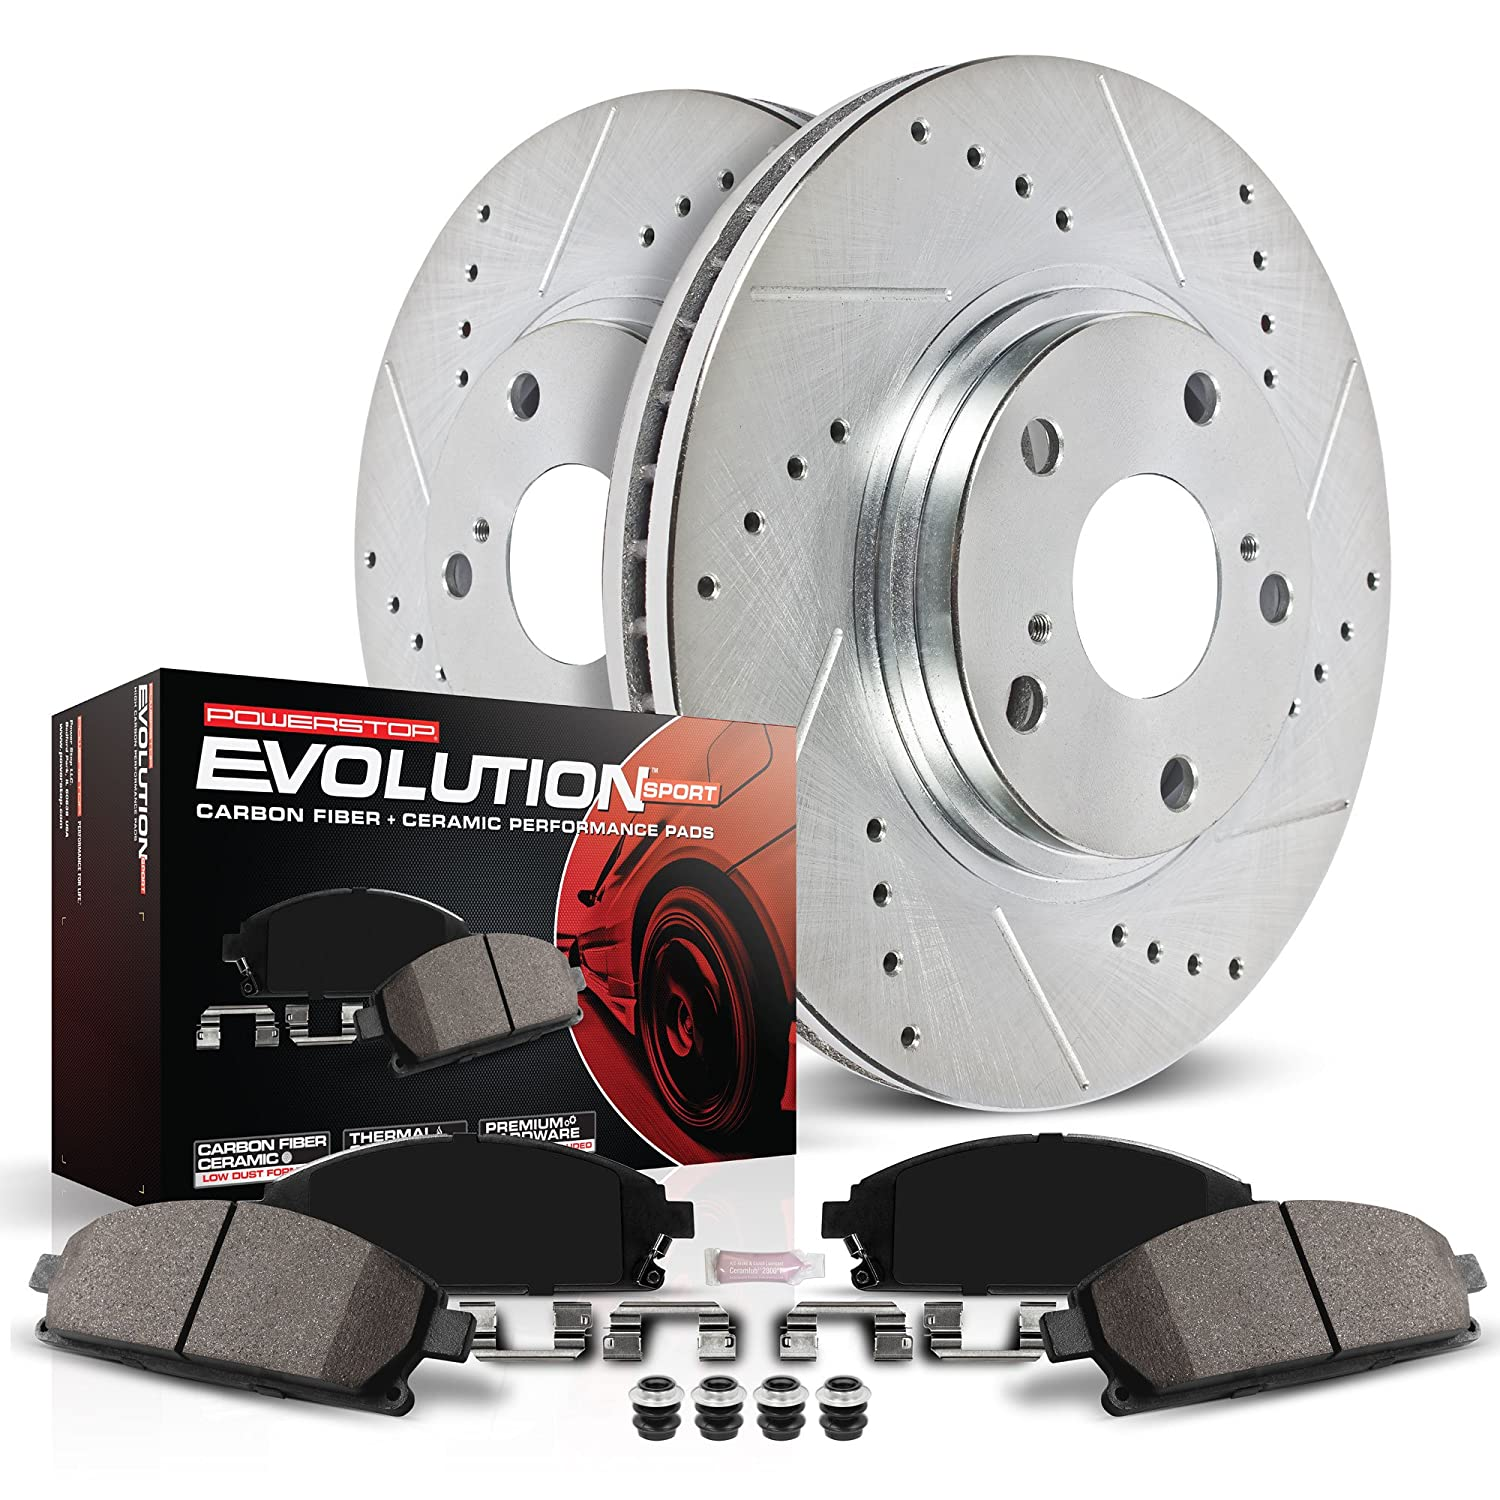 1. Power Stop K681 Front Z23 Evolution Brake Kit with Drilled/Slotted Rotors and Ceramic Brake Pads